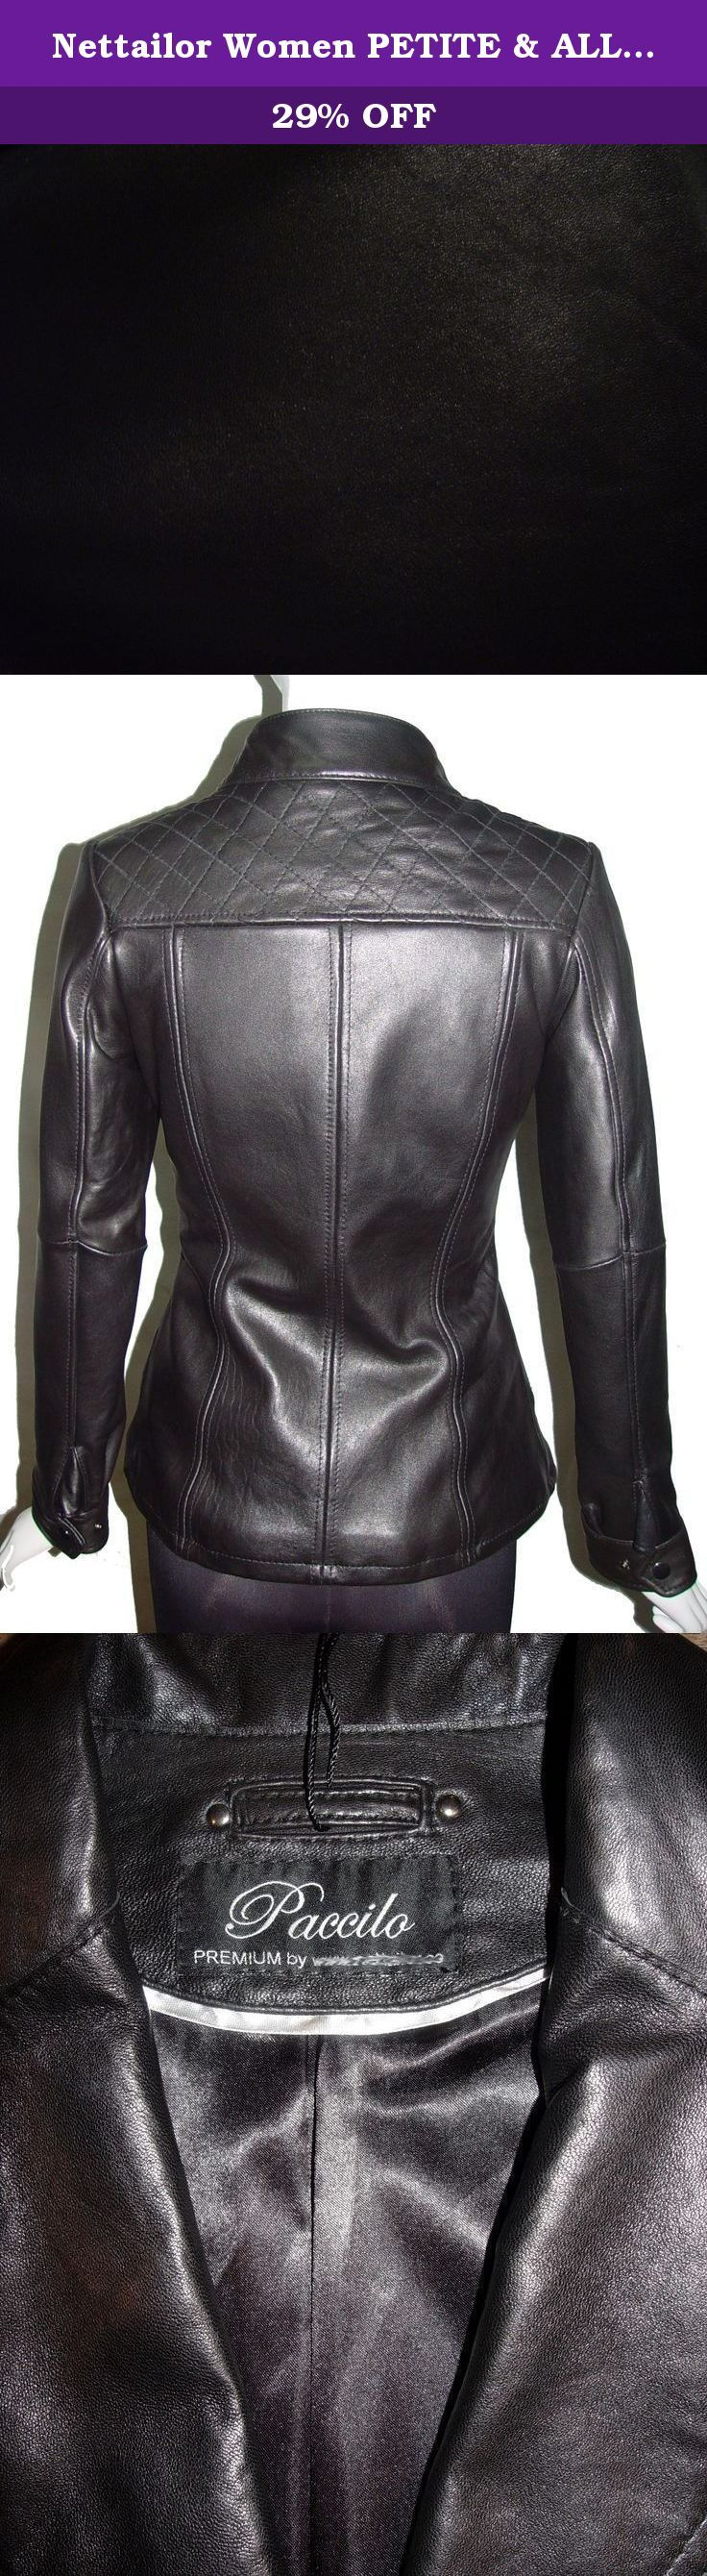 "Nettailor Women PETITE & ALL SIZE Fashion 4139 Leather Motorcycle Jacket. Lambskin, Stand Up Collar, Zip Front, No Insulation. Not all leather is the same. When vendors say or state, ""leather or genuine leather"", they generally use ""pig skin"", which is the worst quality of leather and therefore inexpensive. If you choose to buy ""leather or genuine leather"" only because of its cheap price, you will mostly end up buying ""pig skin"" leather ($50-$150 price range). Lambskin, pigskin and…"